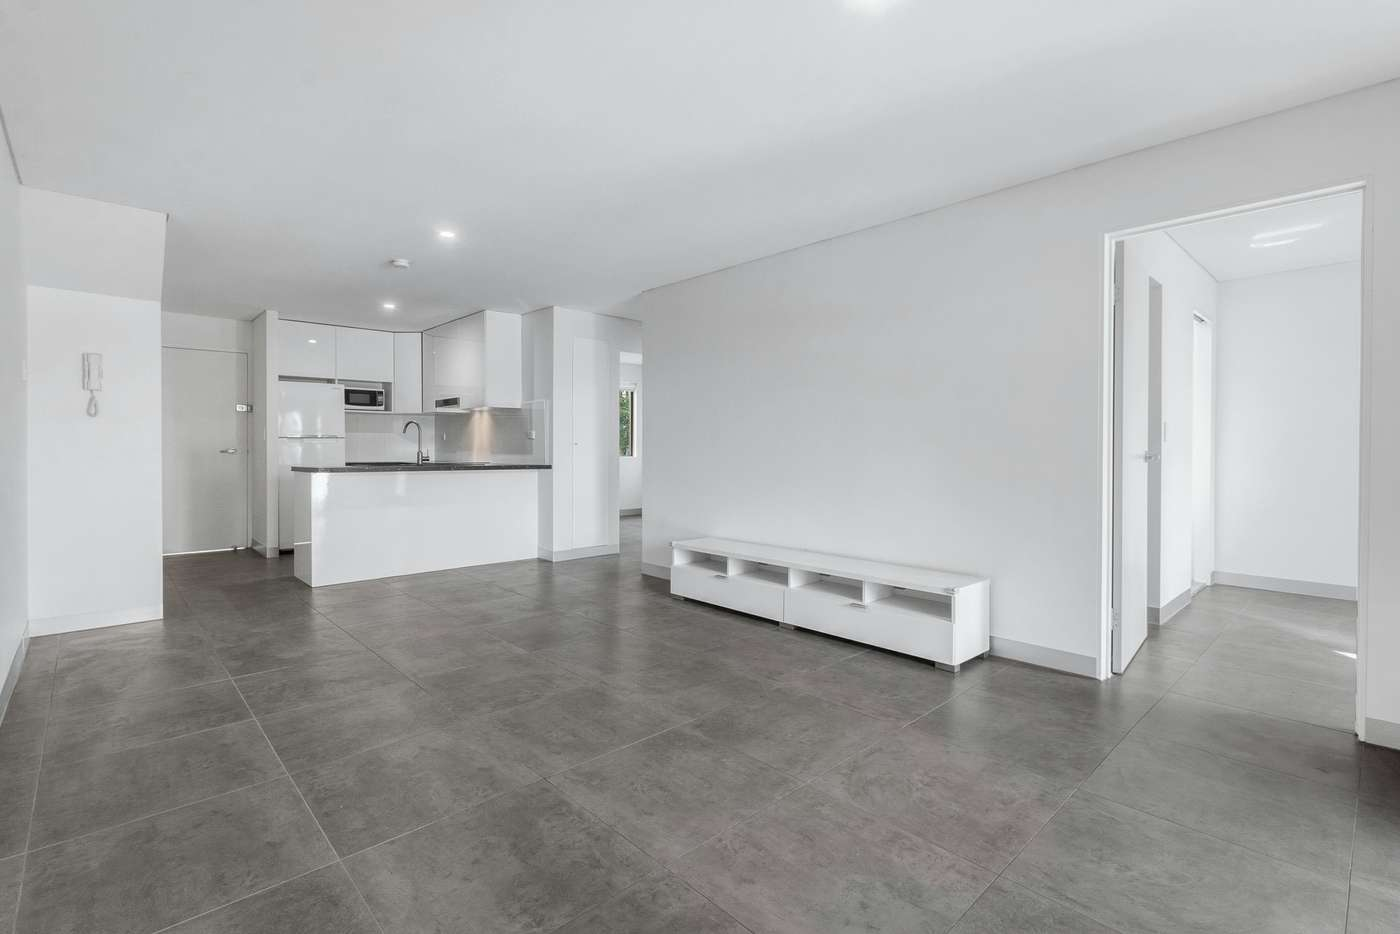 Main view of Homely apartment listing, 15/31 Glen Road, Toowong QLD 4066